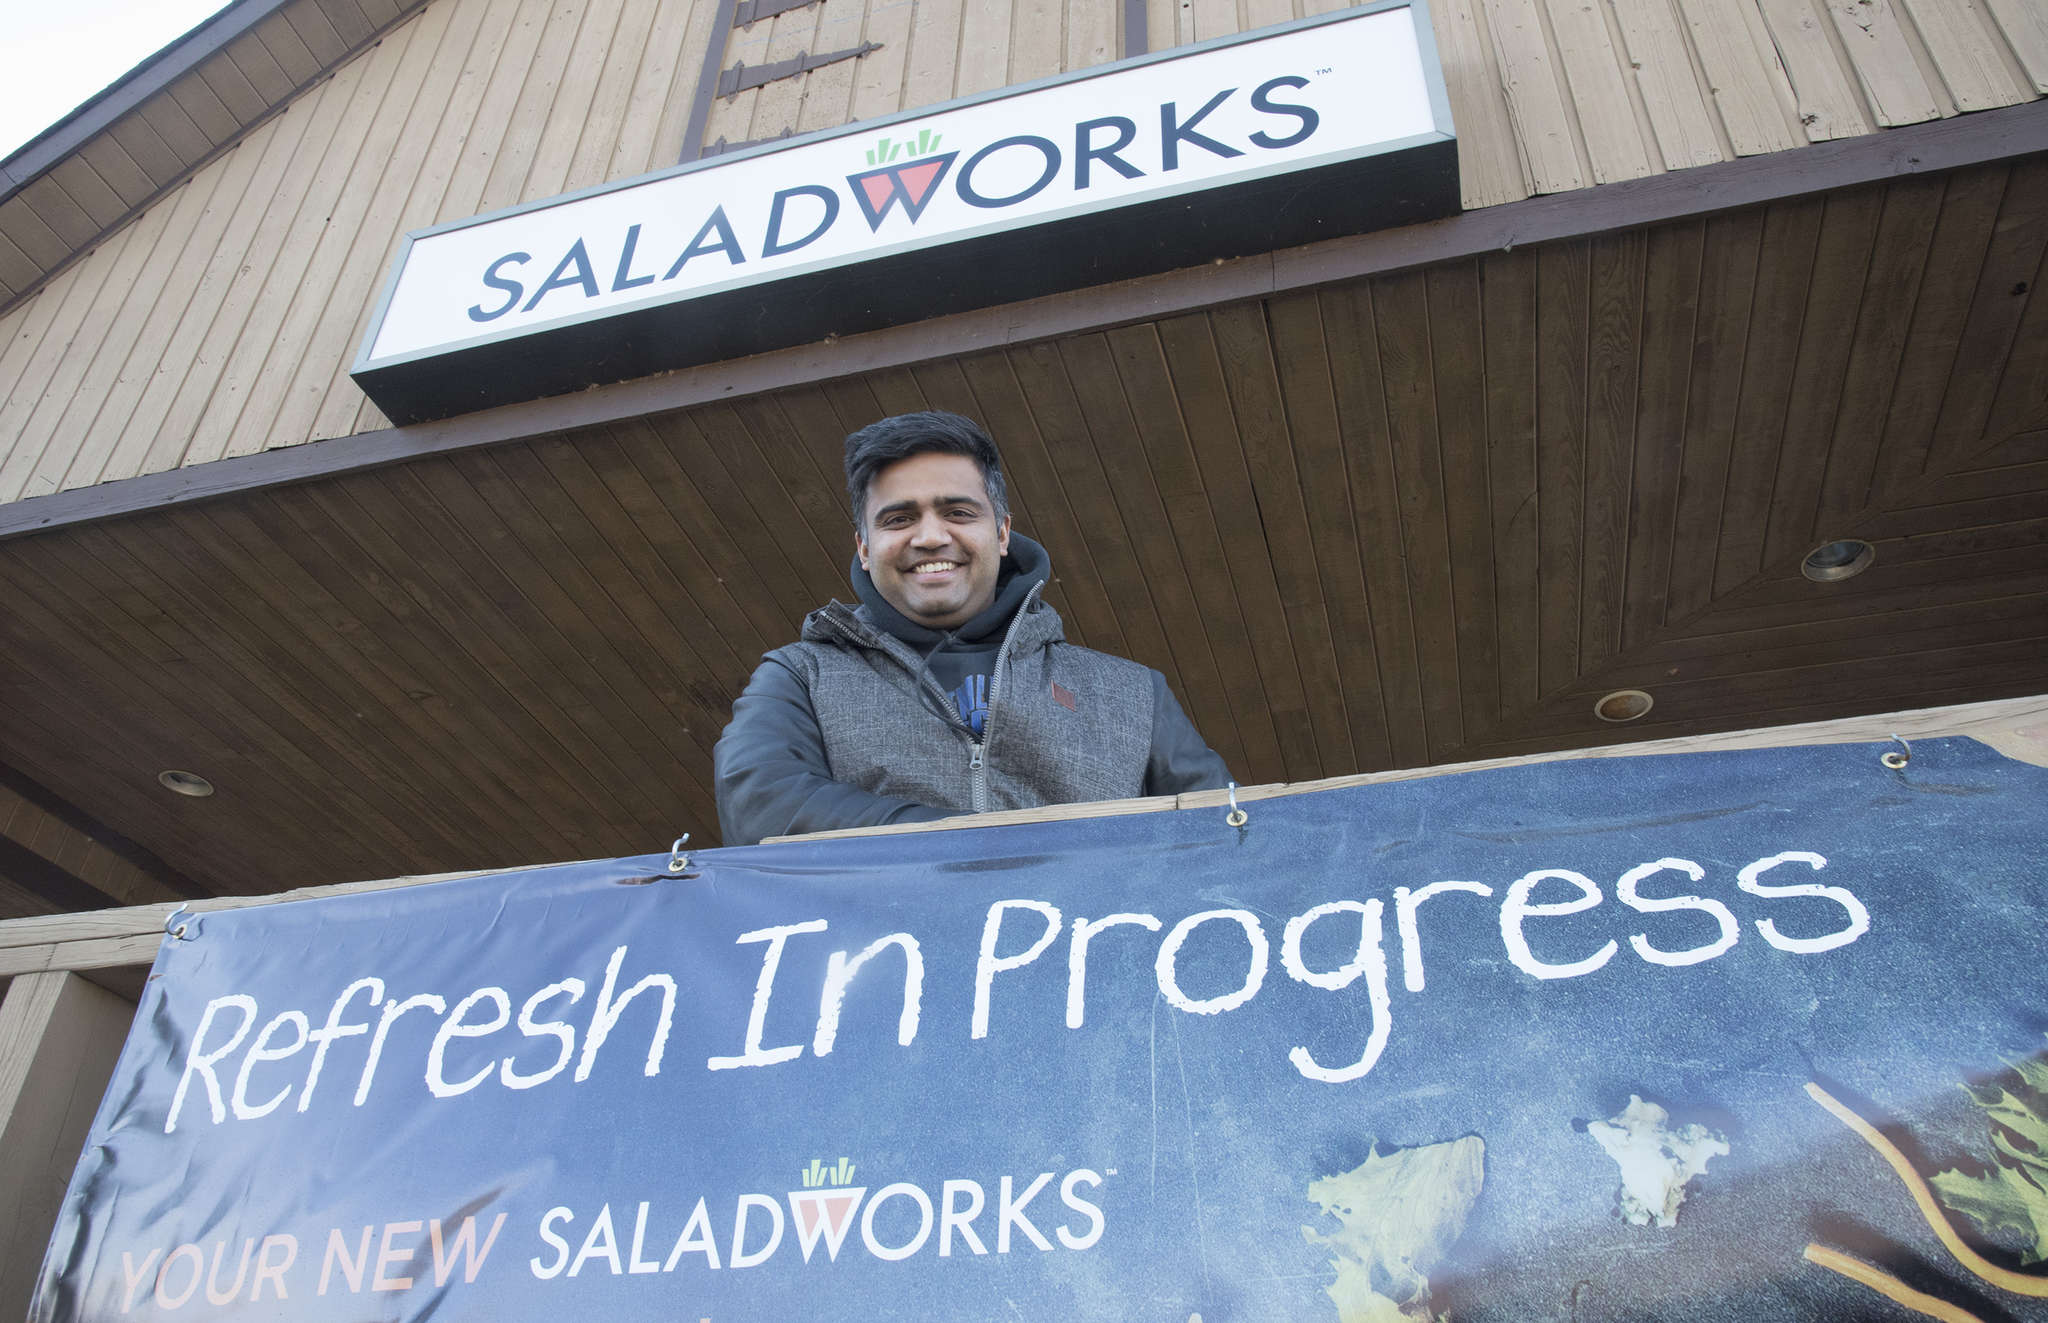 """Nish Patel, a Saladworks franchisee, looks out from his business in Newtown. The renovation will include adding a WiFi bar. """"This is what the new generation is attracted to,"""" Patel said."""